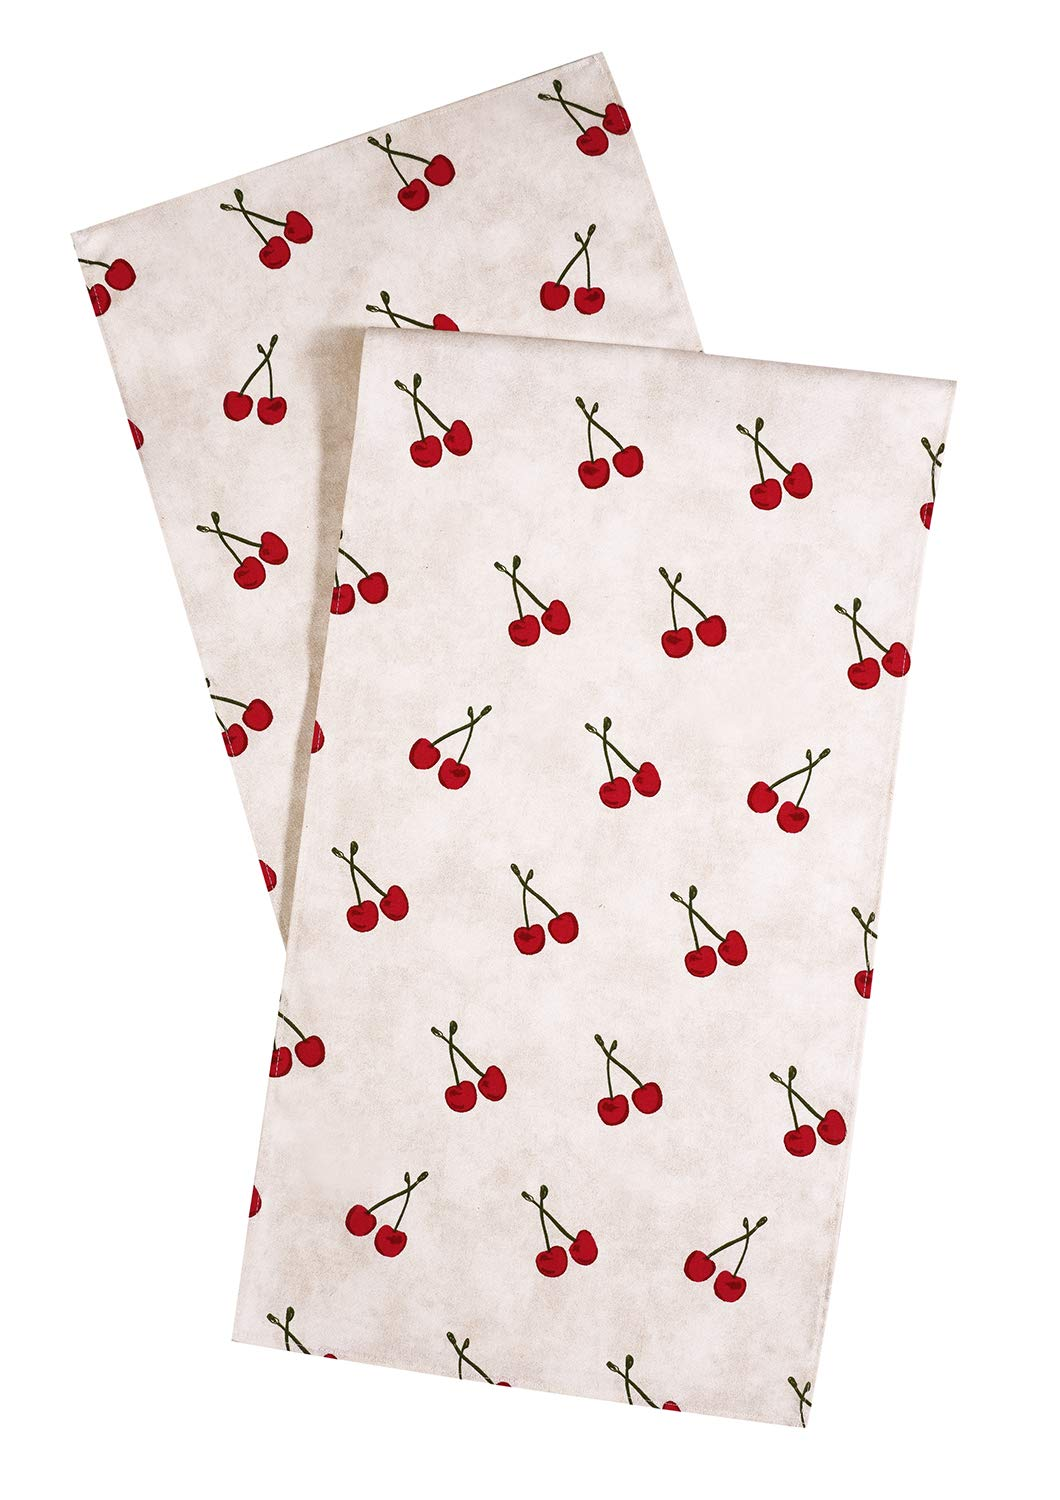 Table Runner Table Linens Dining Tablecloth Red Cherries Buffet Table Covers Dining Table Decorations 90 Inch